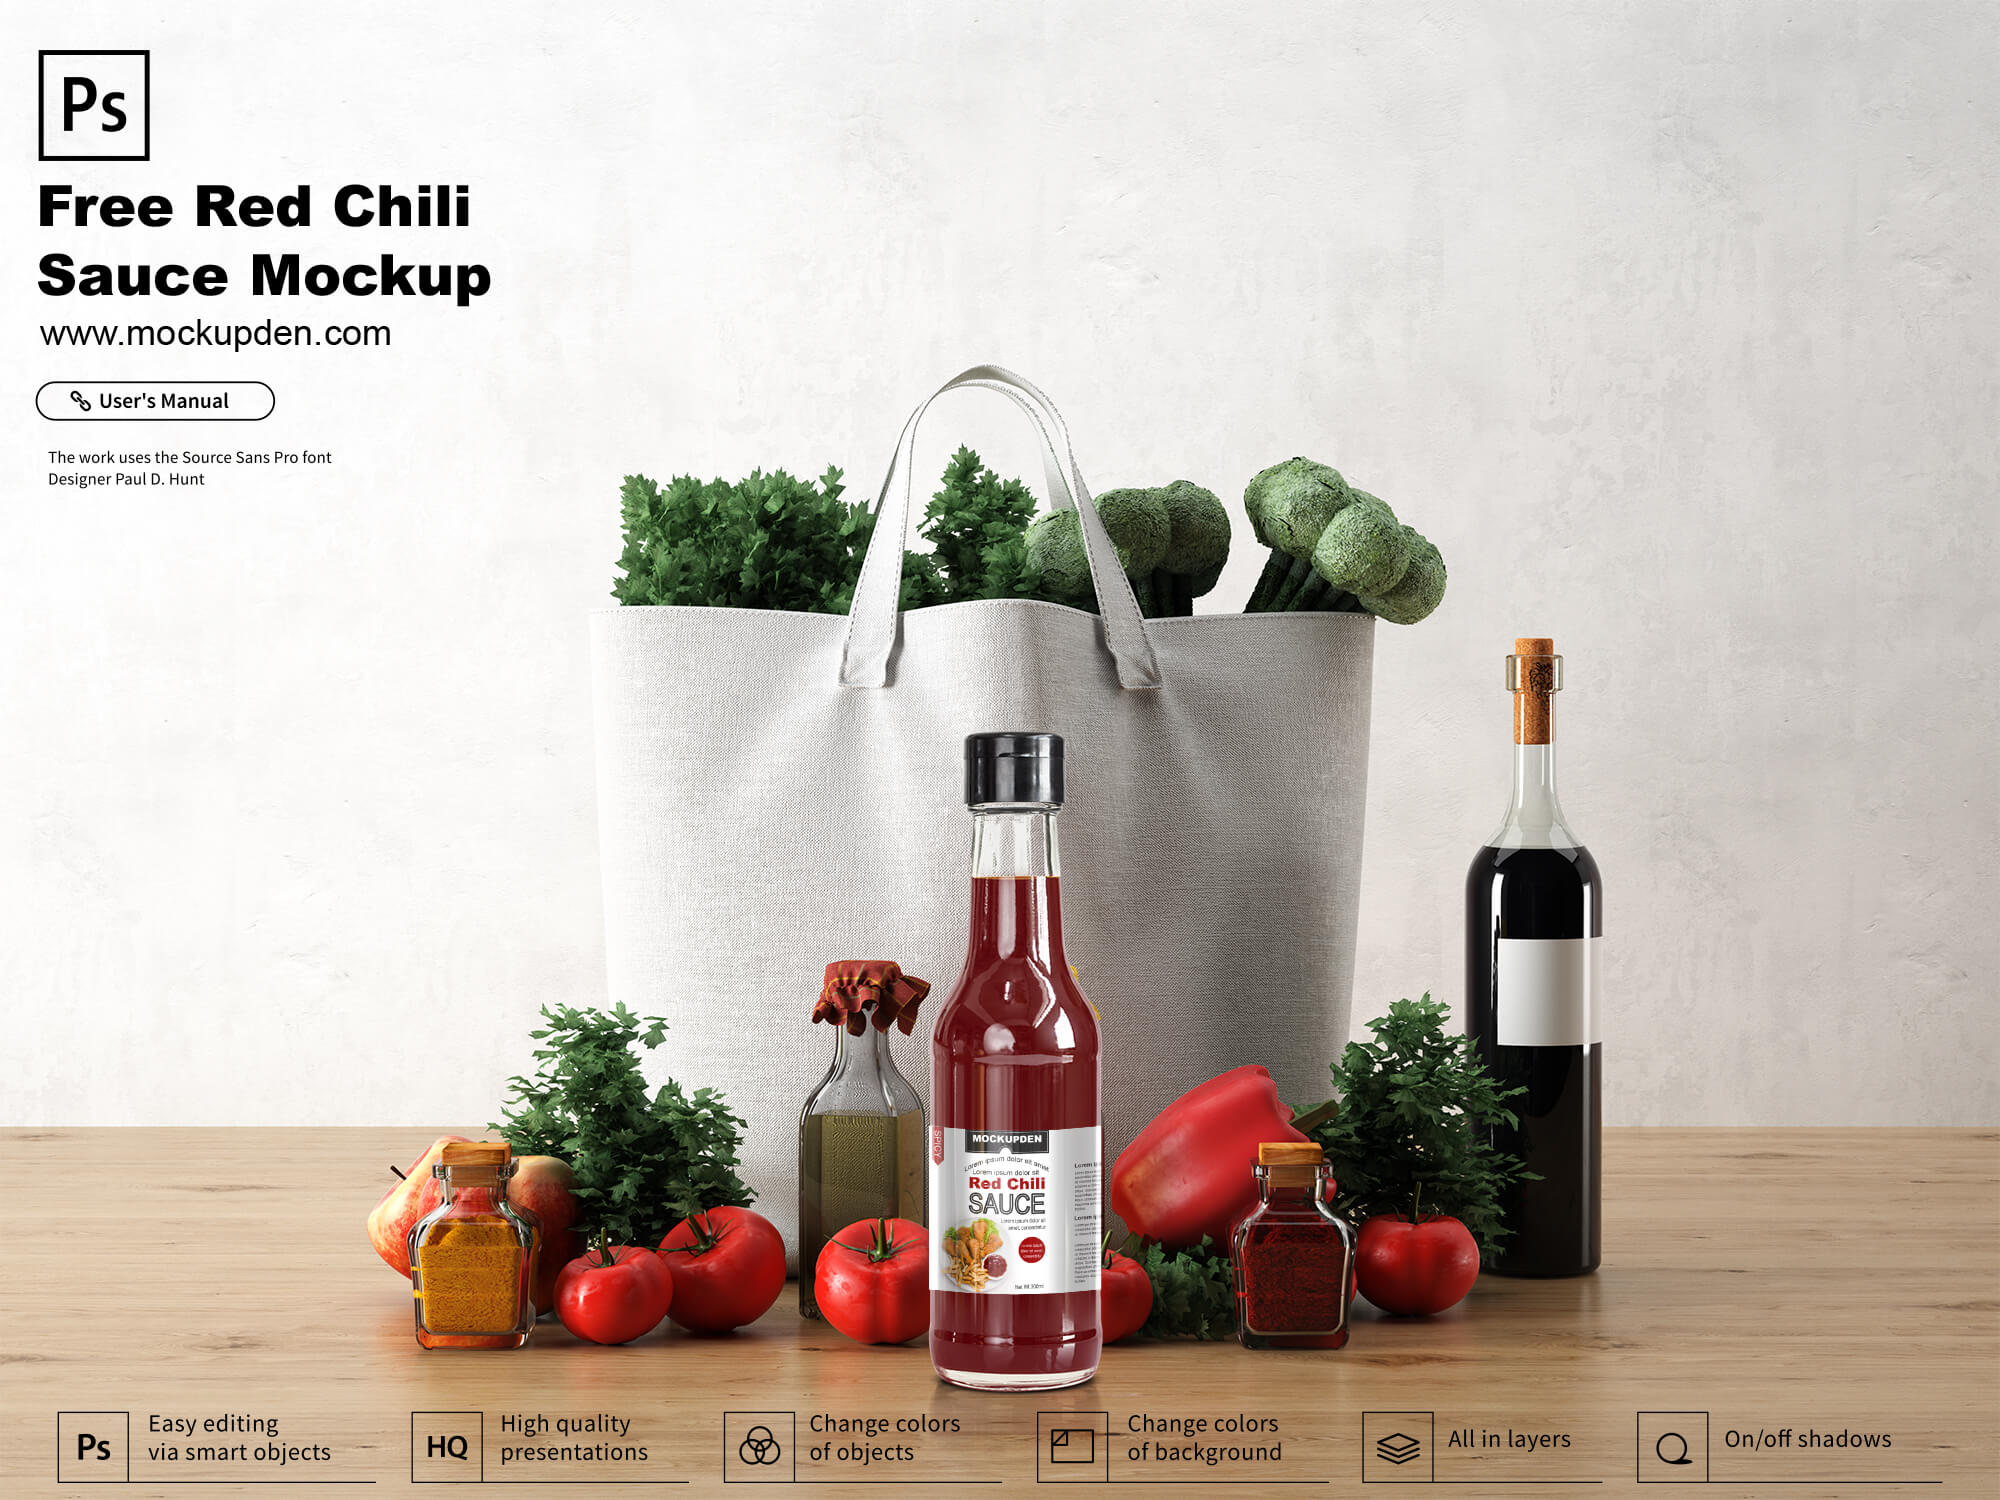 Free Red Chili Sauce Bottle Mockup PSD Template